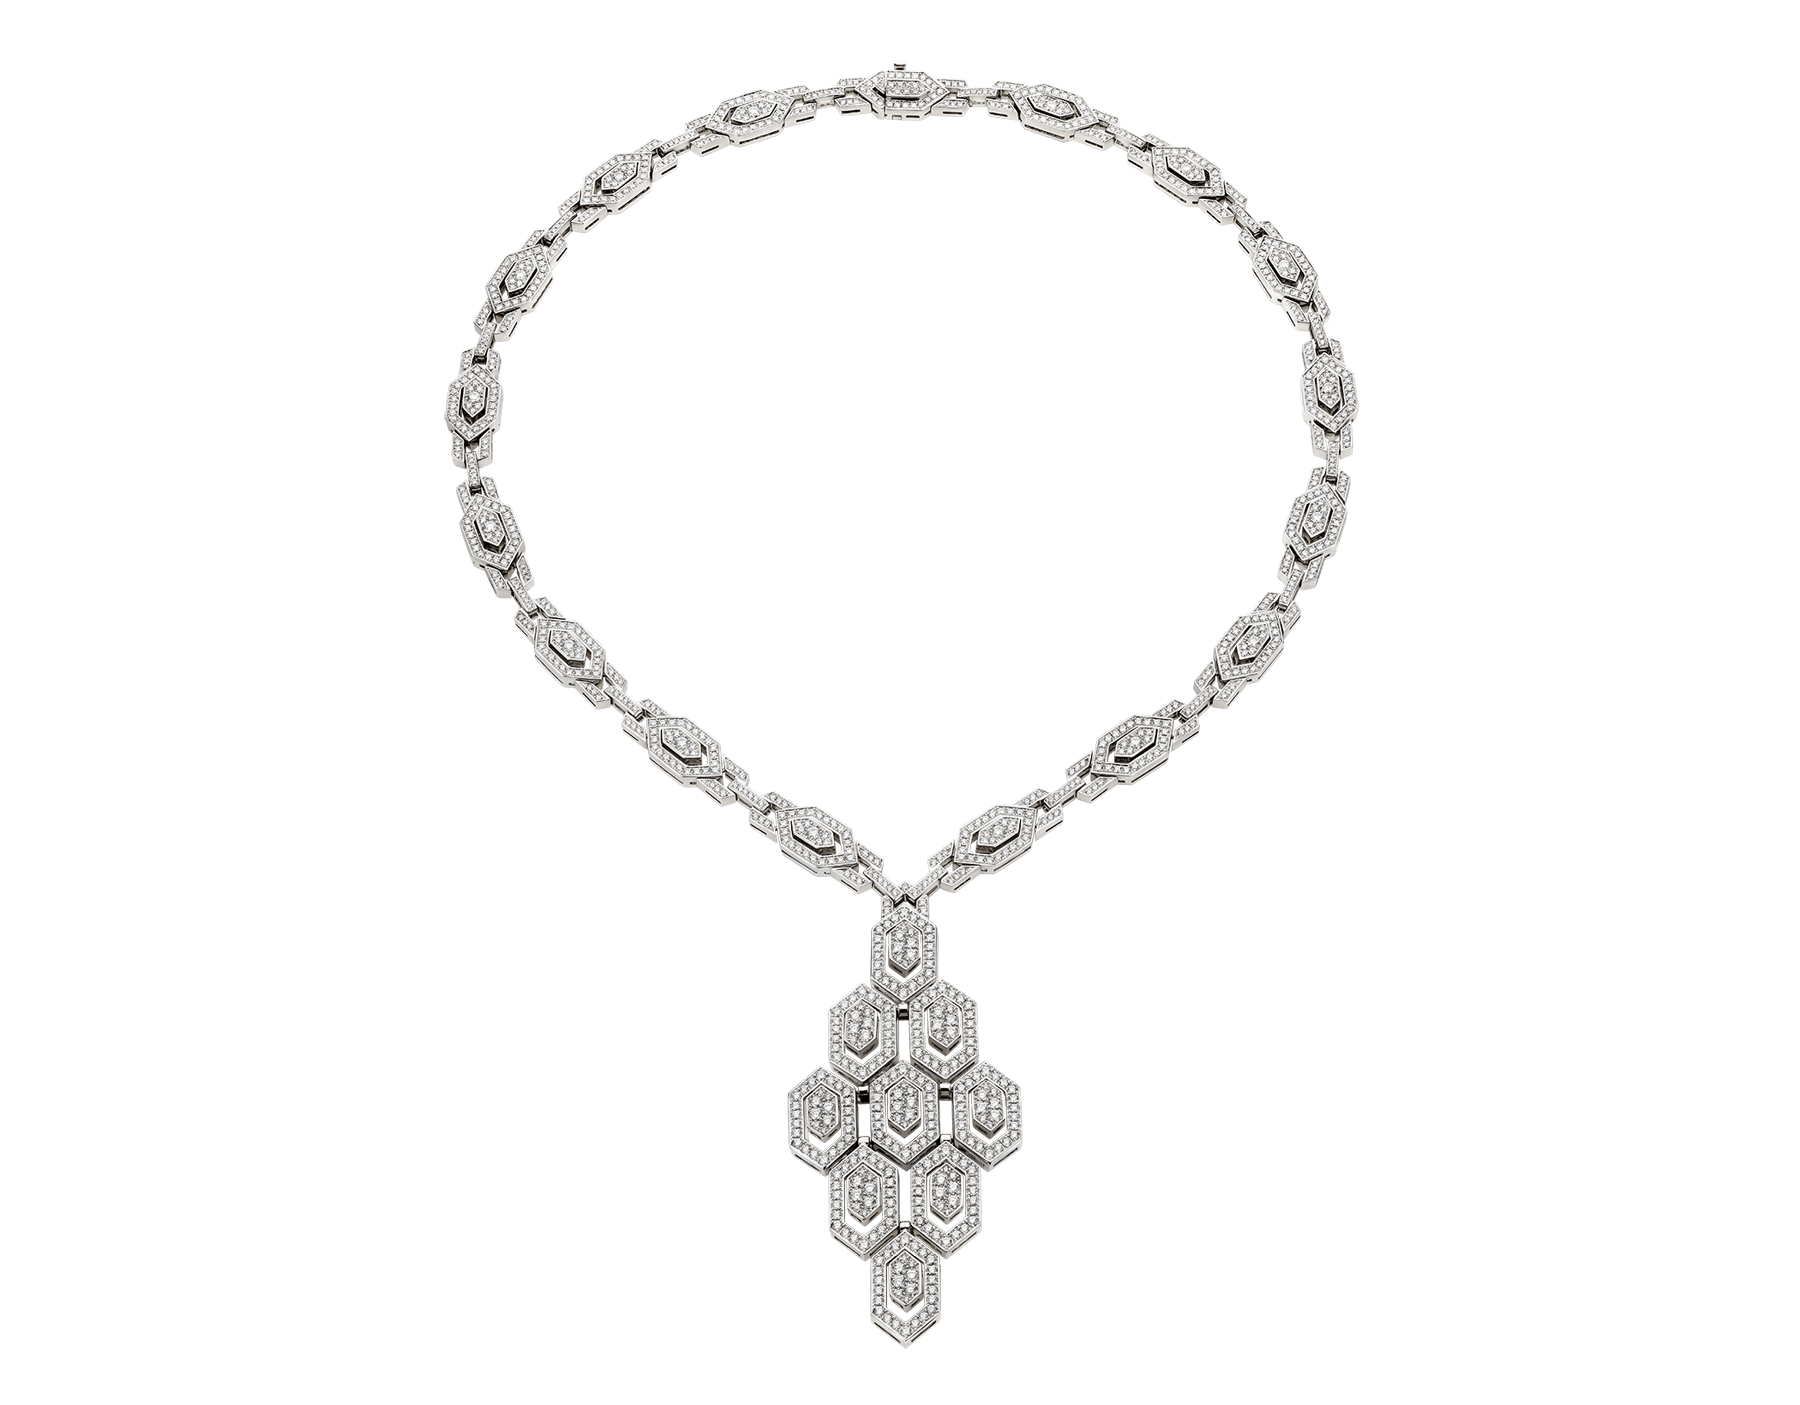 Serpenti Necklace in 18 kt white gold and pavè diamonds (8.66 ct) 353843 image 1